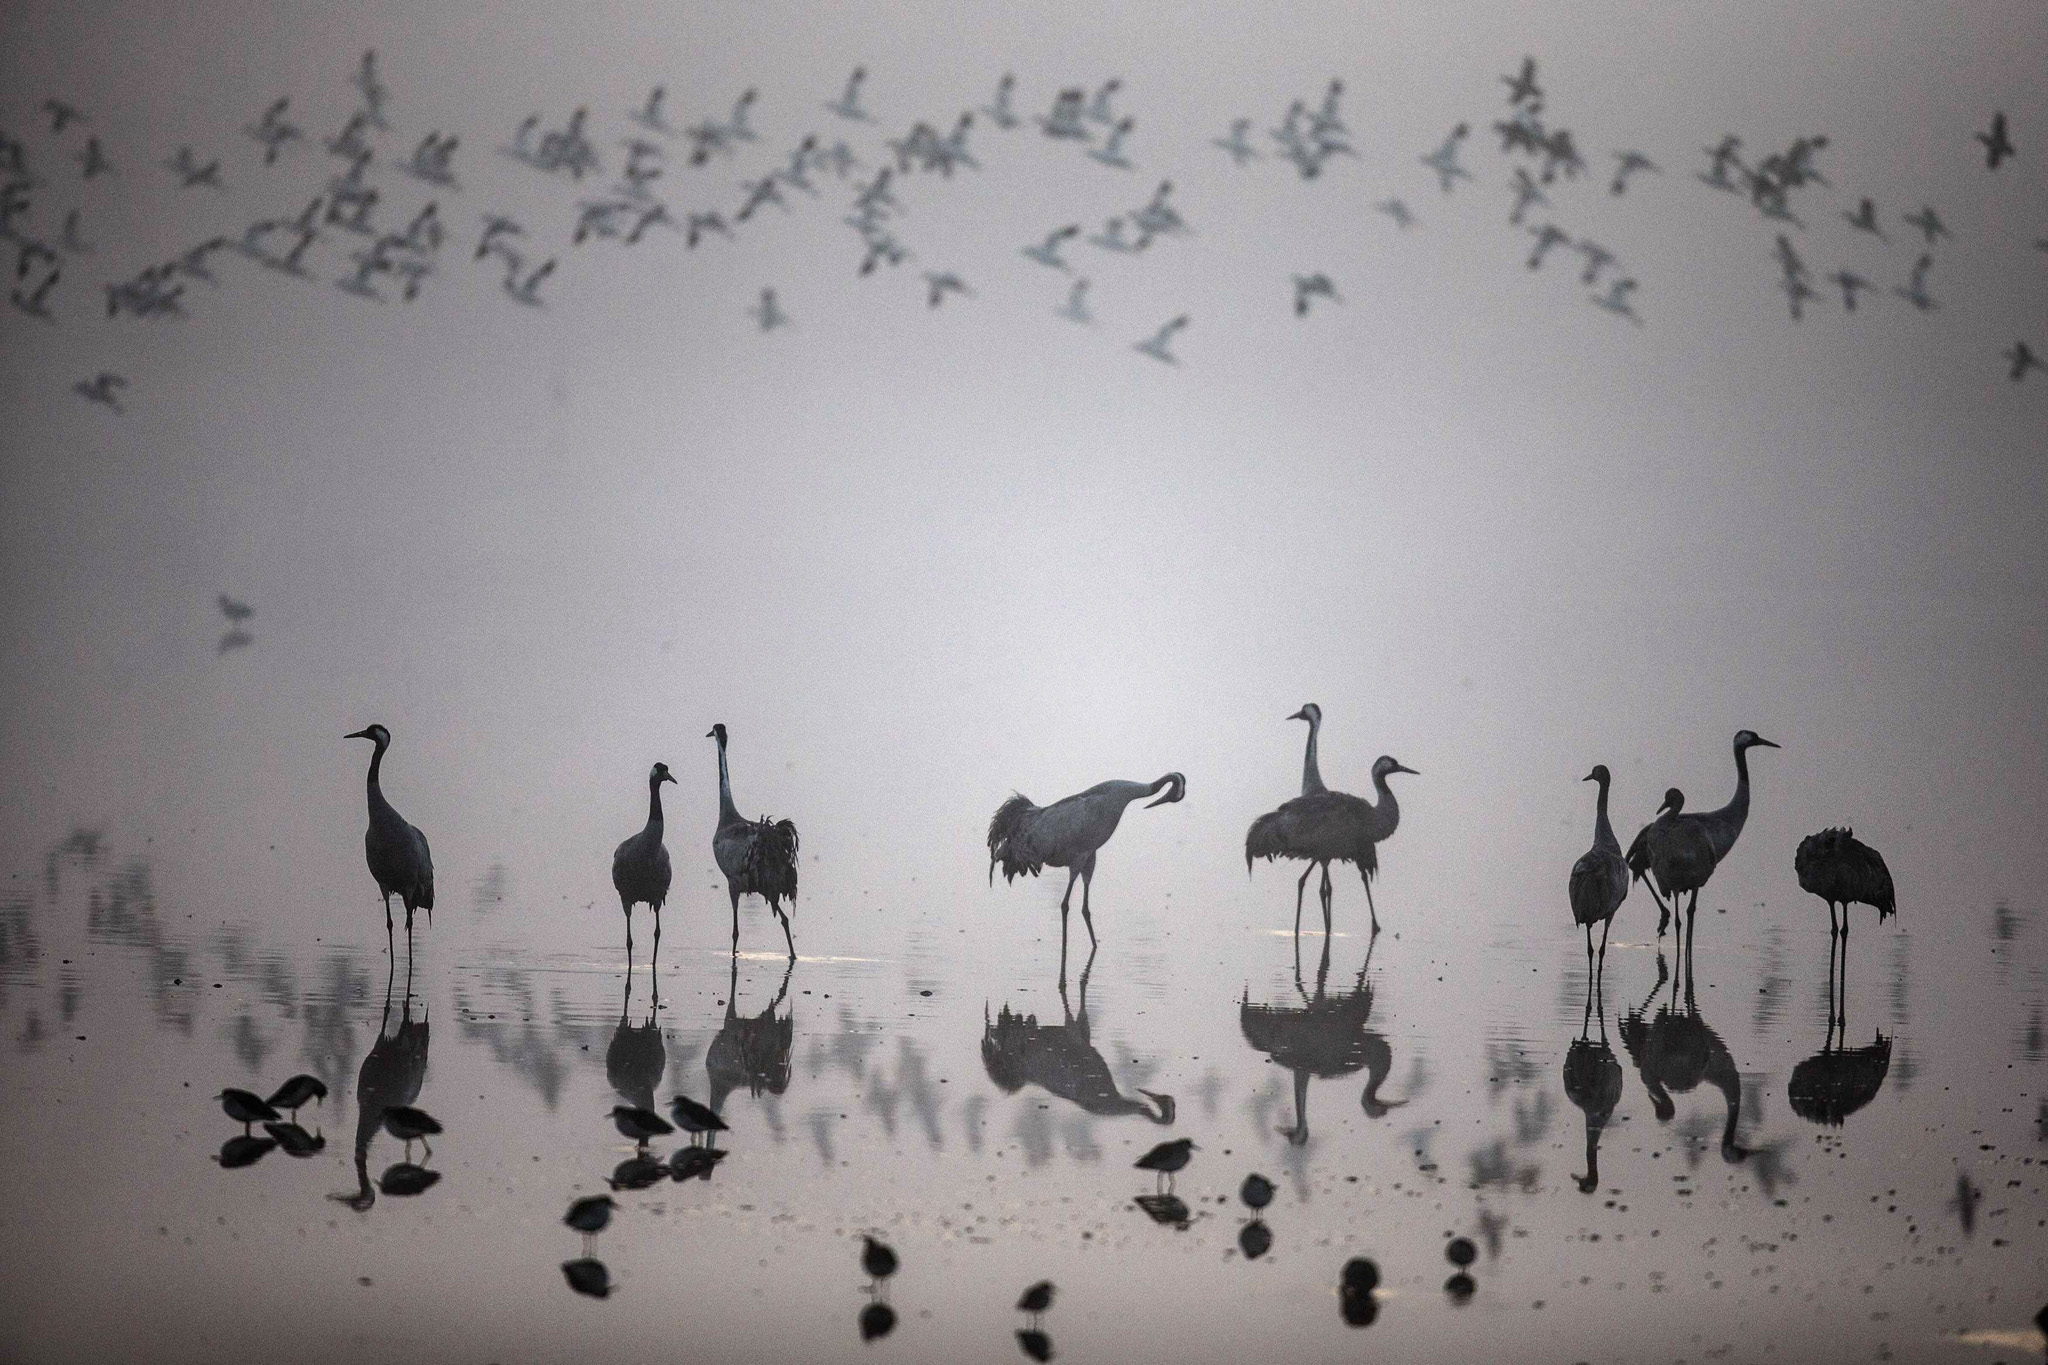 http://blogs.ft.com/photo-diary/files/2013/12/Cranes.jpg